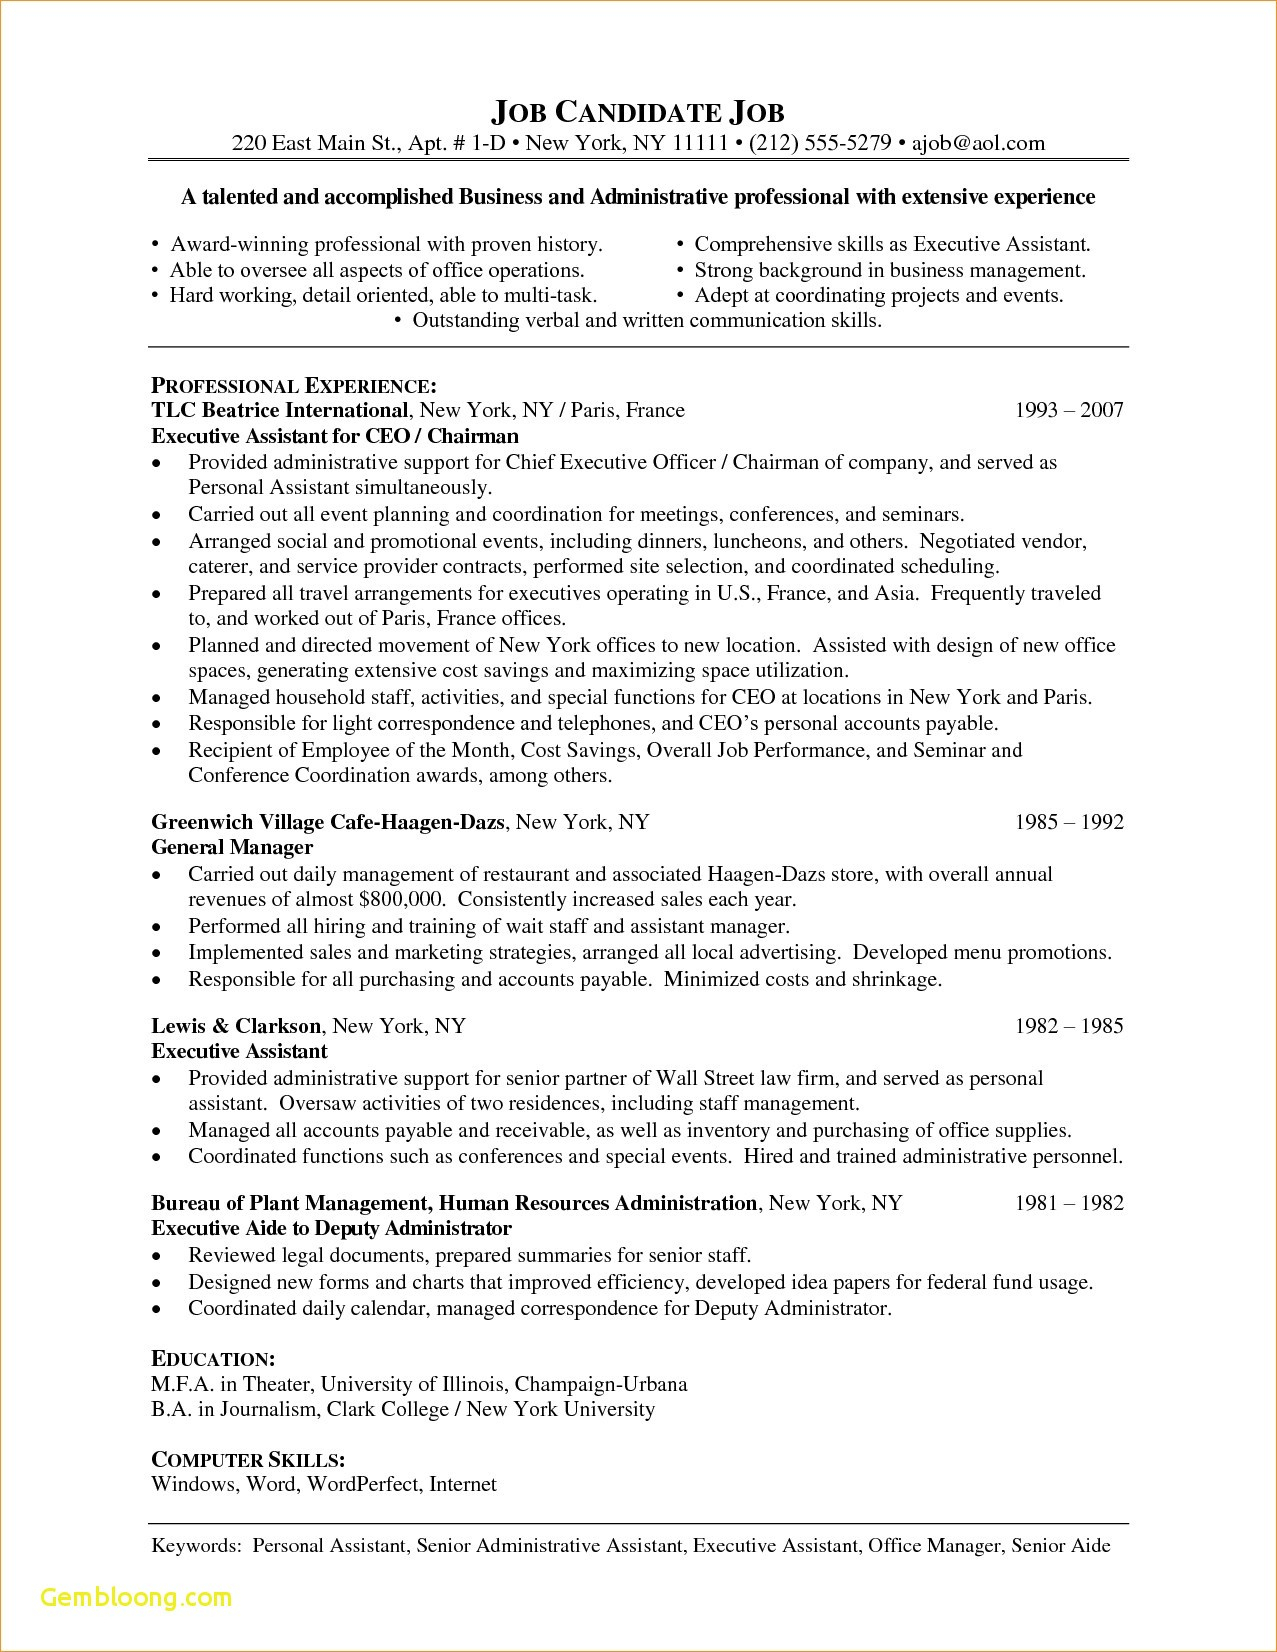 Account Payable Resume Template - Cover Letter and Resume Template Word Download